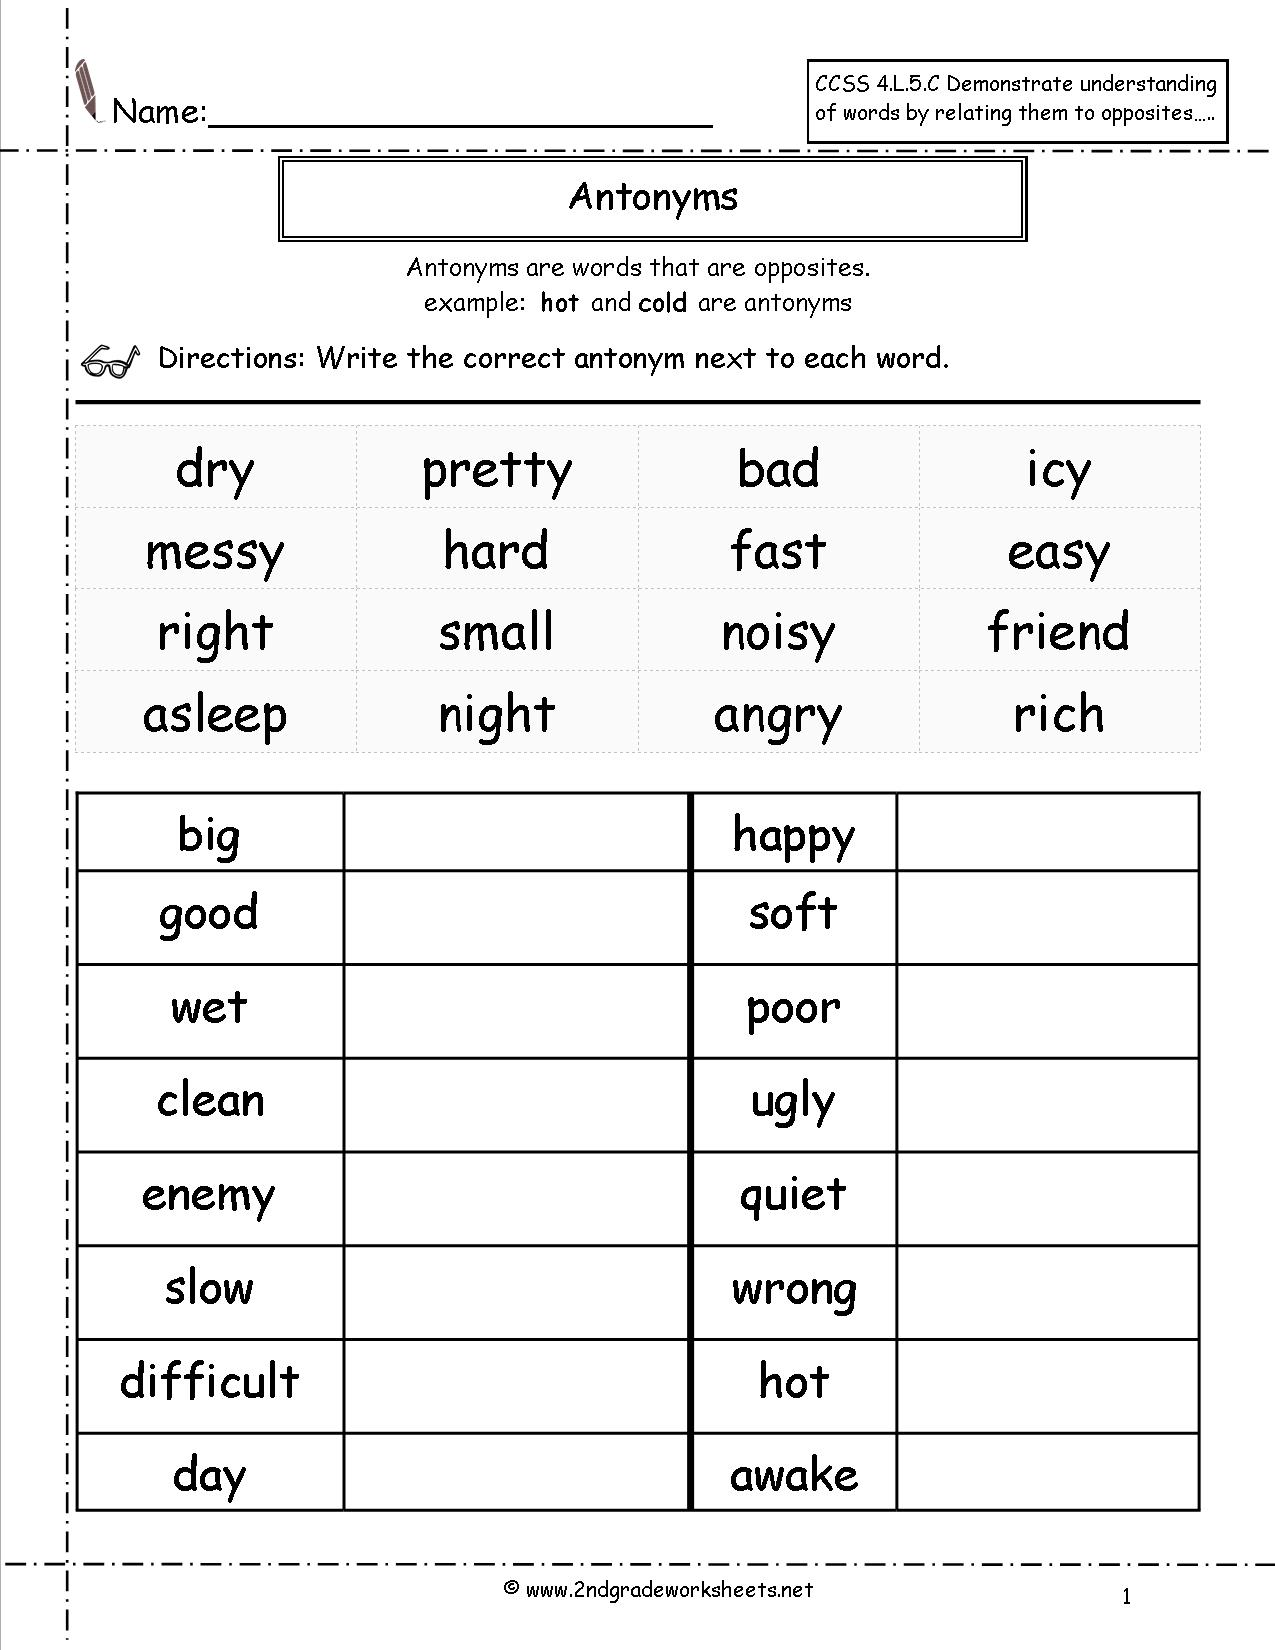 17 Best Images Of Nouns Verbs Adjectives Worksheets 1st